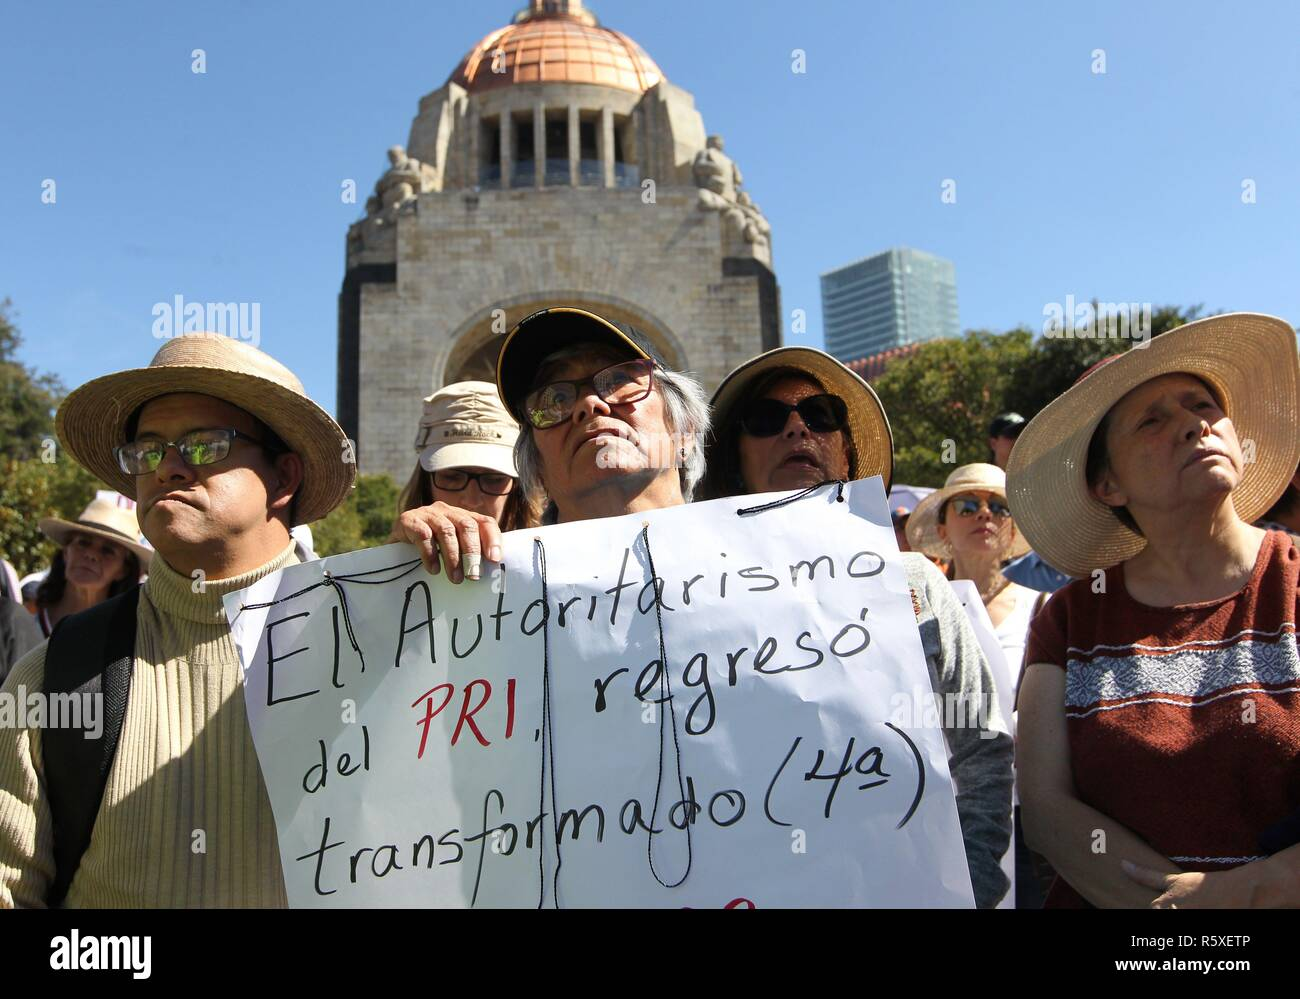 Mexico City, Mexico. 02nd Dec, 2018. A woman holds a sign that reads 'PRI's authoritarianism returns transformed' during a protest against Mexican President, Andres Manuel Lopez Obrador, in Mexico City, Mexico, 02 December 2018. Around two thousand people protested against the new president on the first day of his term after his investiture yesterday. Credit: Mario Guzman/EFE/Alamy Live News Stock Photo